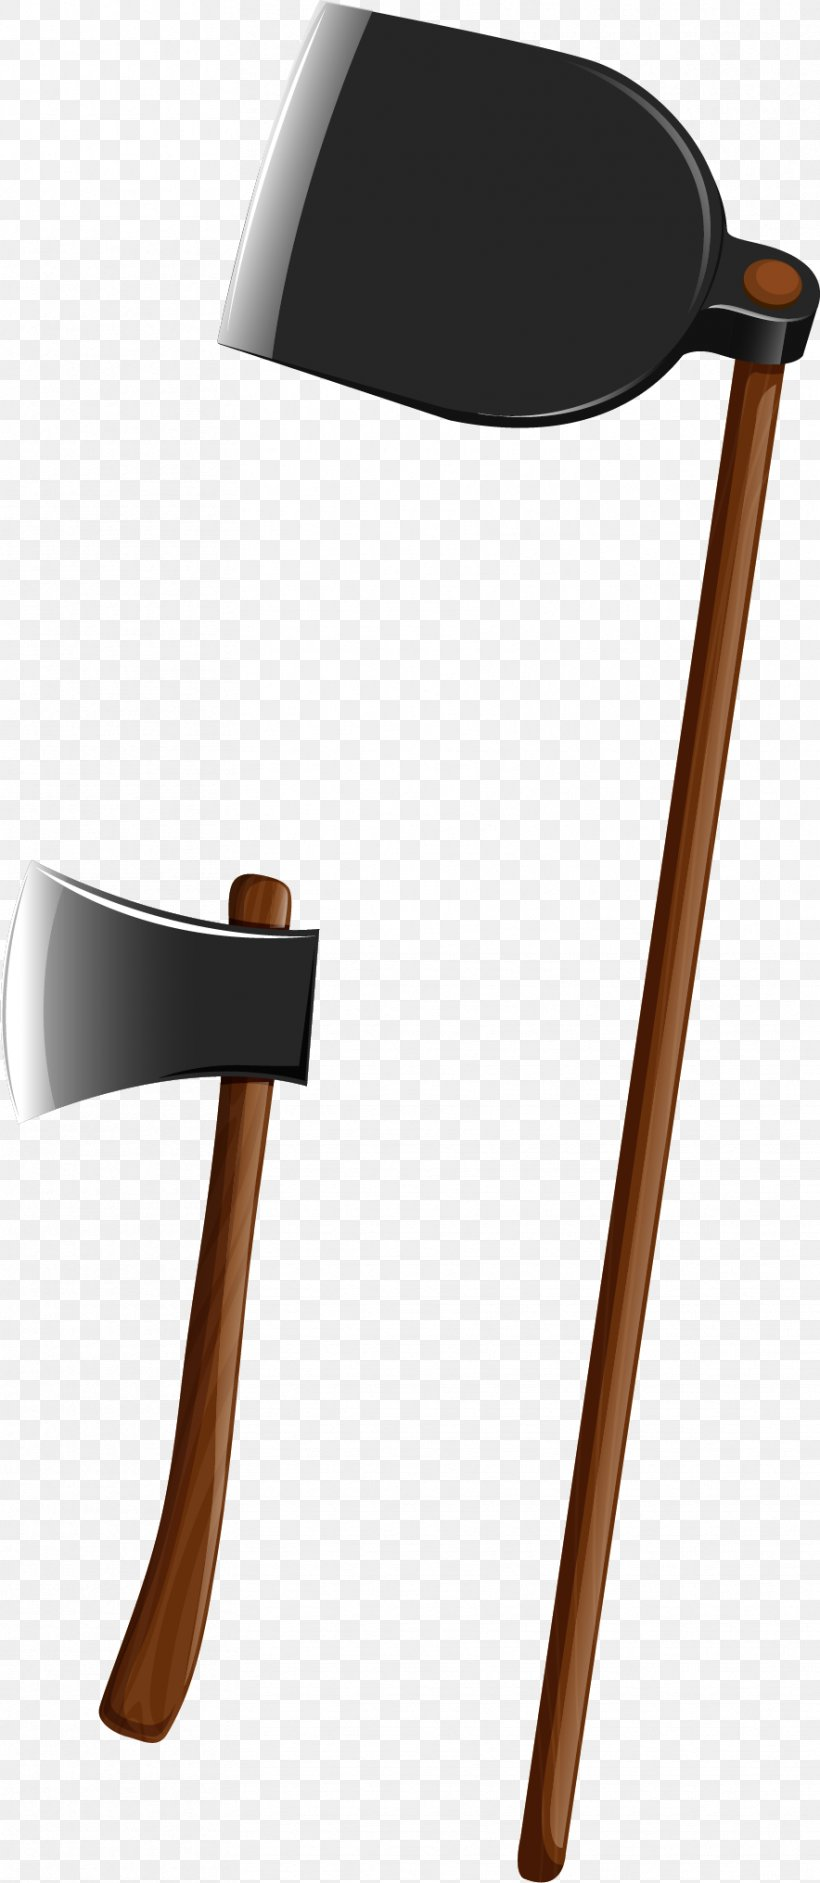 Hand Axe, PNG, 884x2031px, Axe, Diagram, Hand Axe, Hoe, Pickaxe Download Free